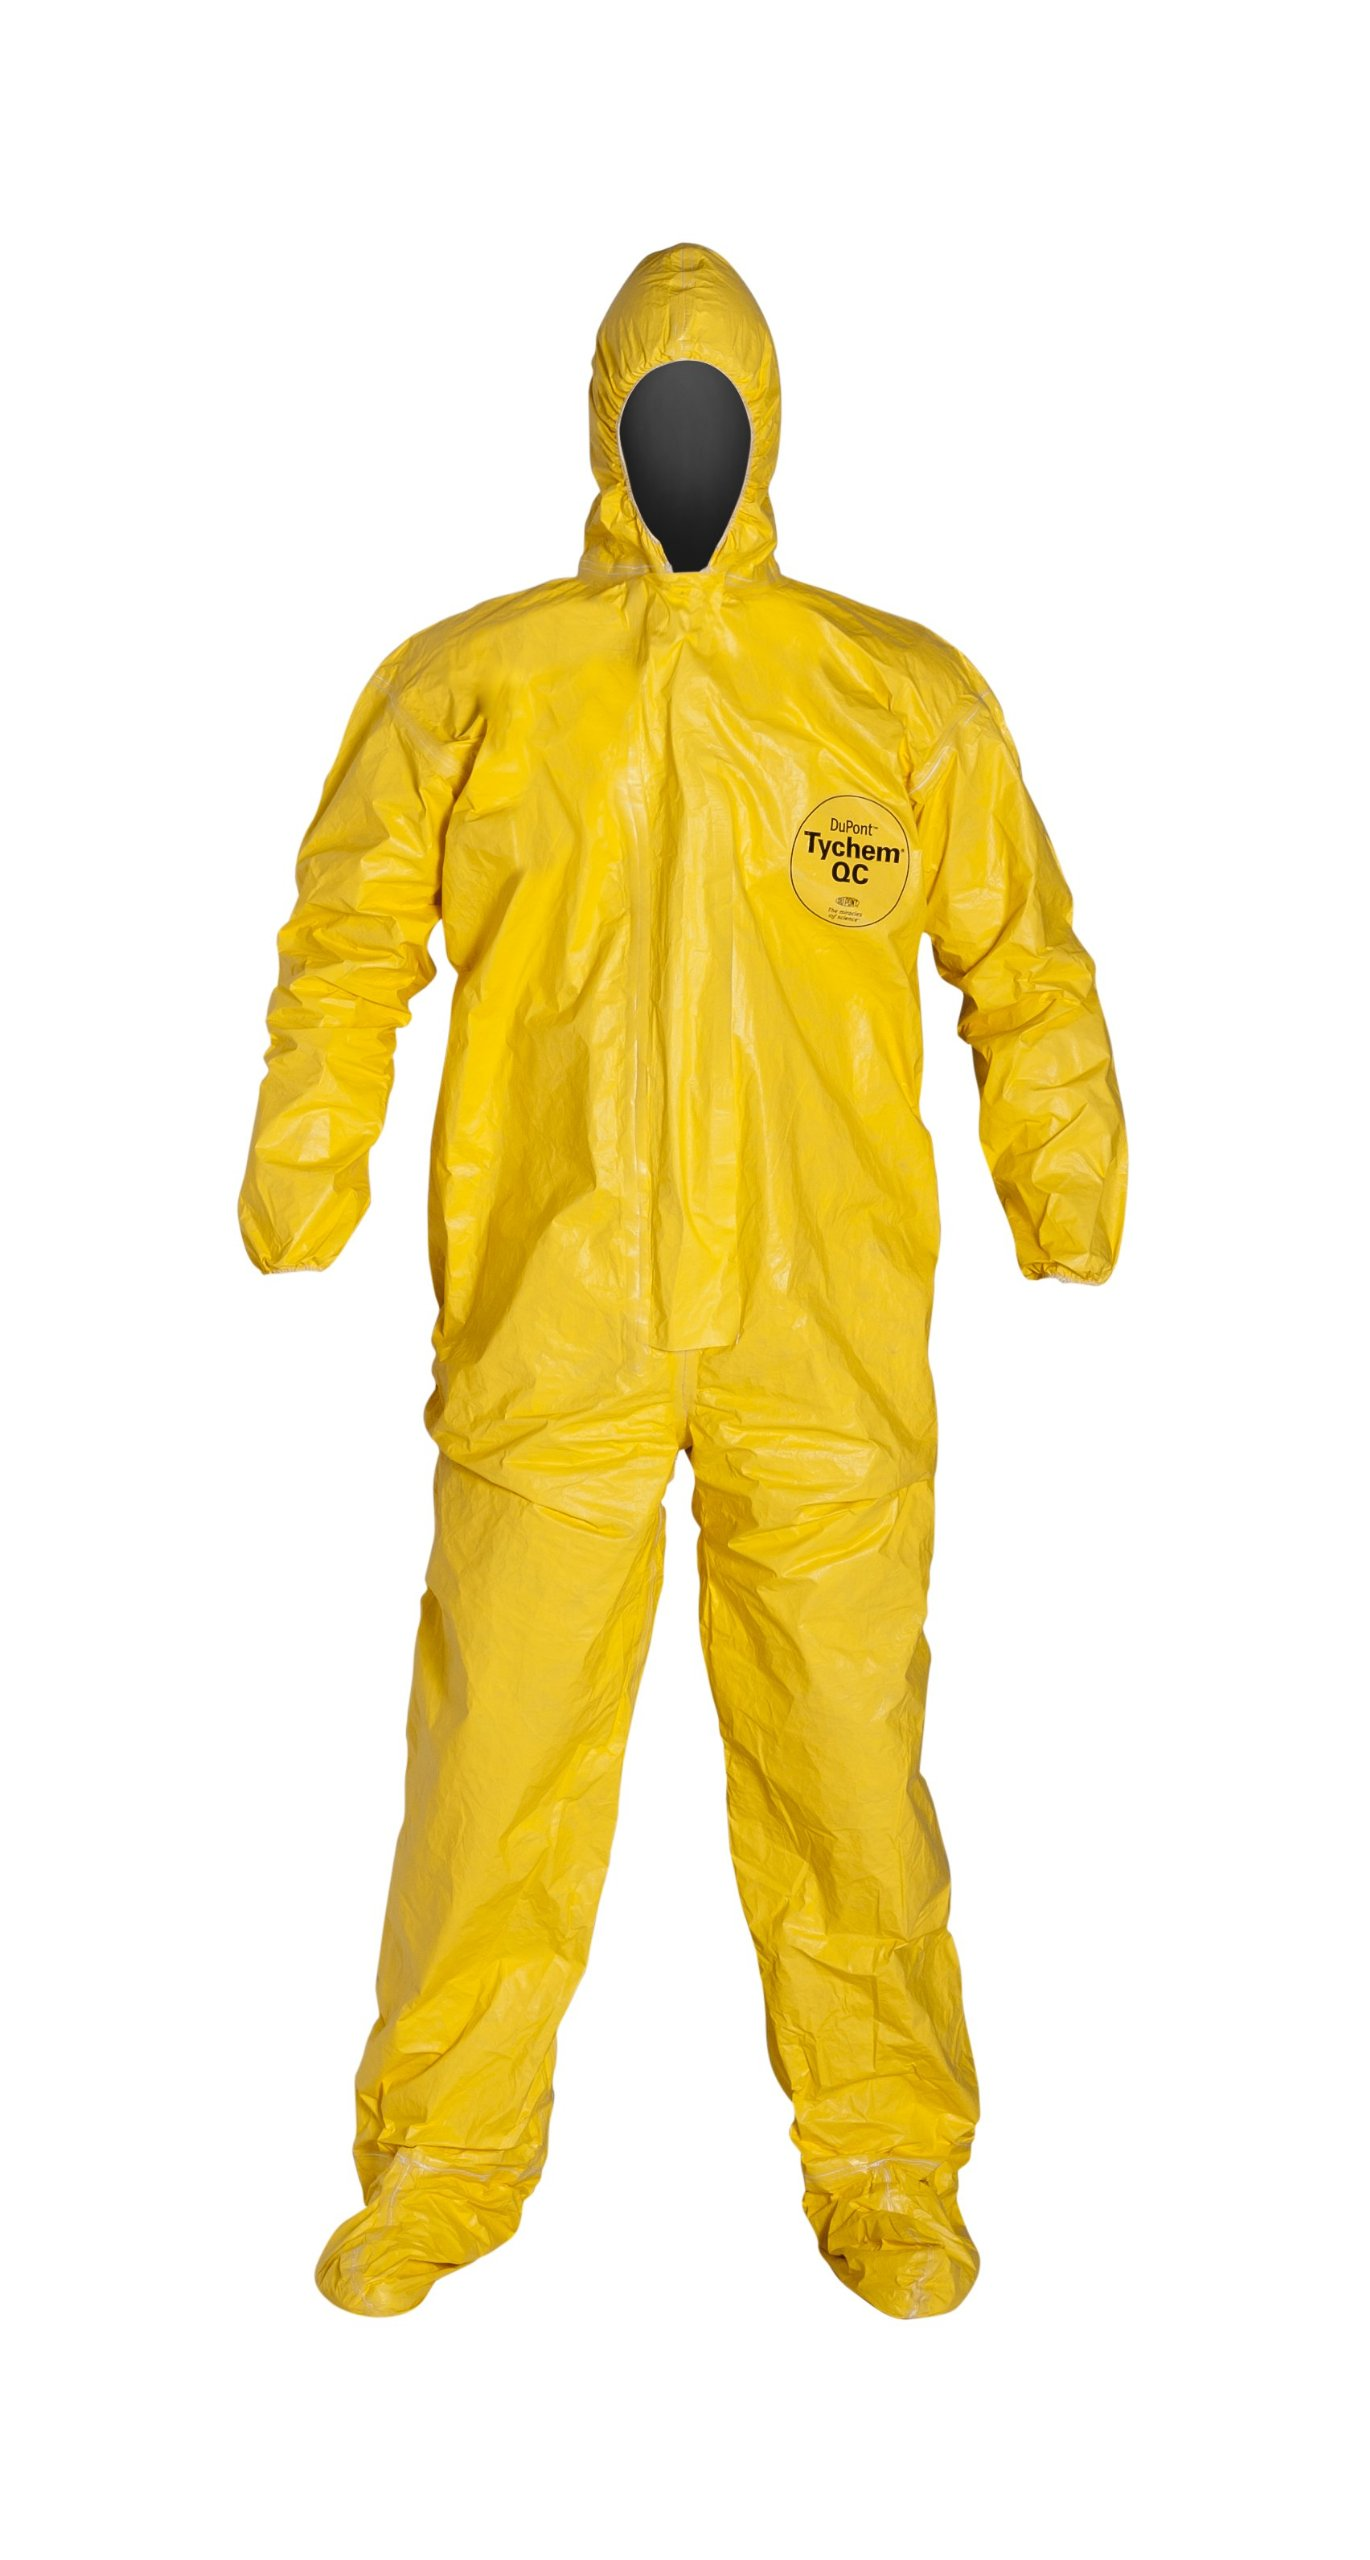 DuPont Tychem 2000 QC122T Disposable Chemical Resistant Coverall with Hood and Elastic Cuff, Yellow, Large (Pack of 4)